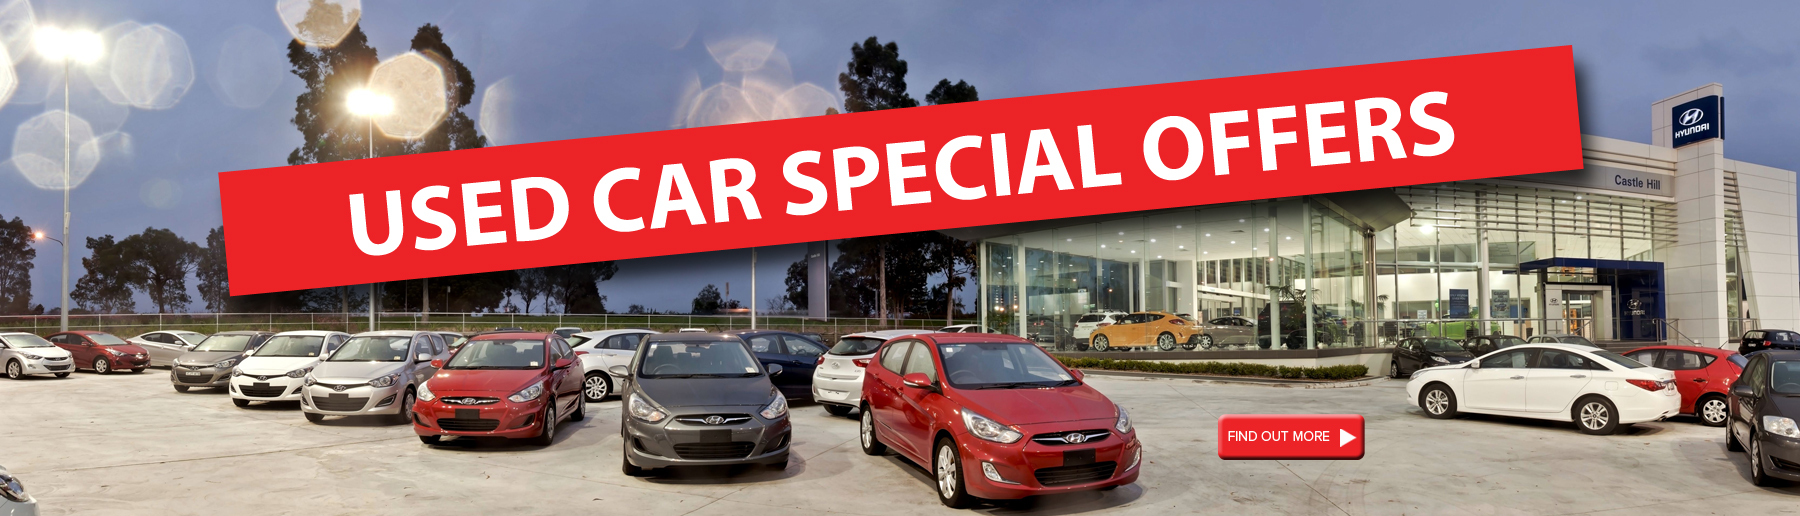 Used Car Special Offers